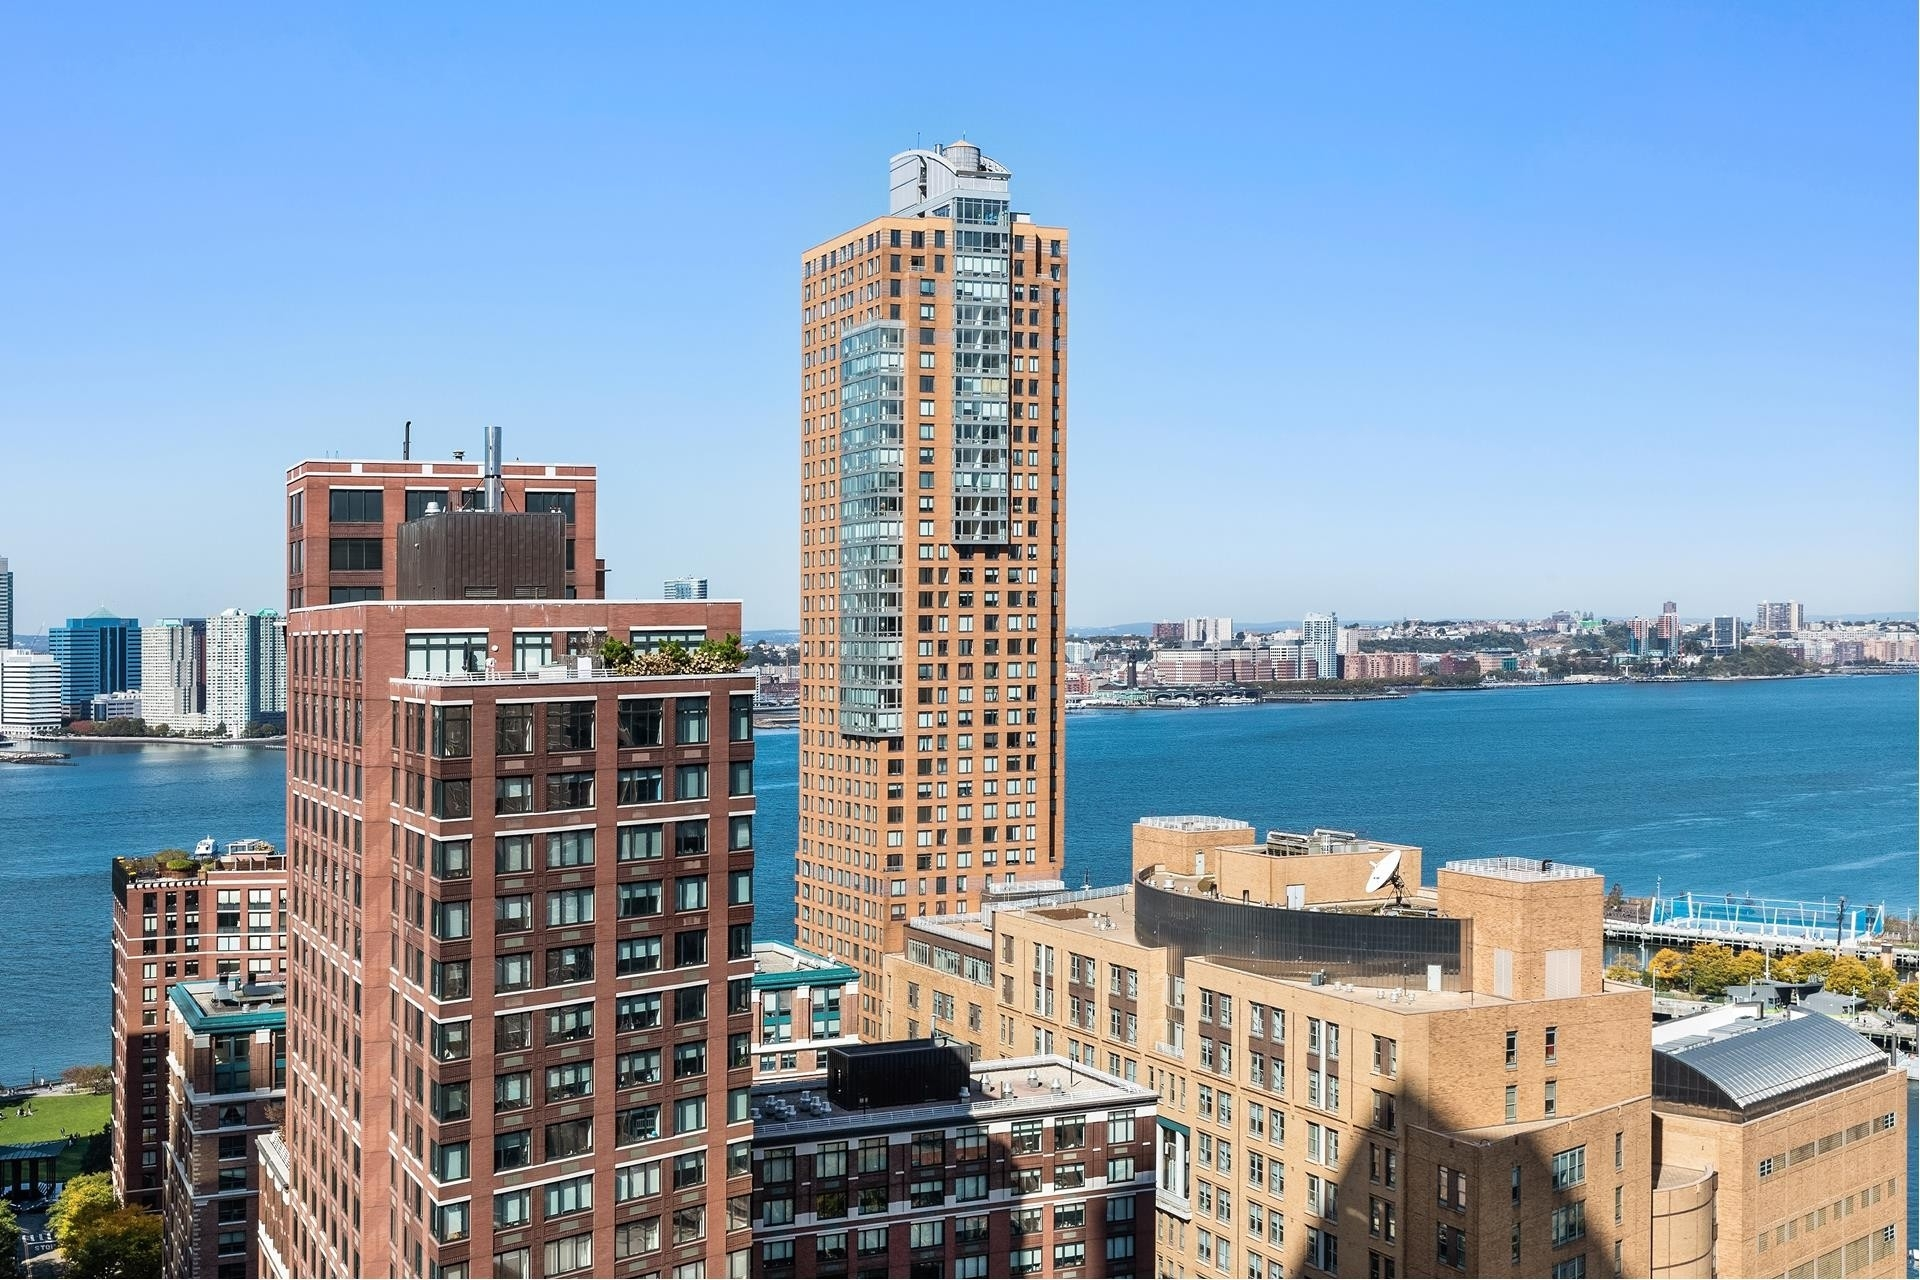 2. Condominiums for Sale at 101 Warren St, 2420 TriBeCa, New York, NY 10007